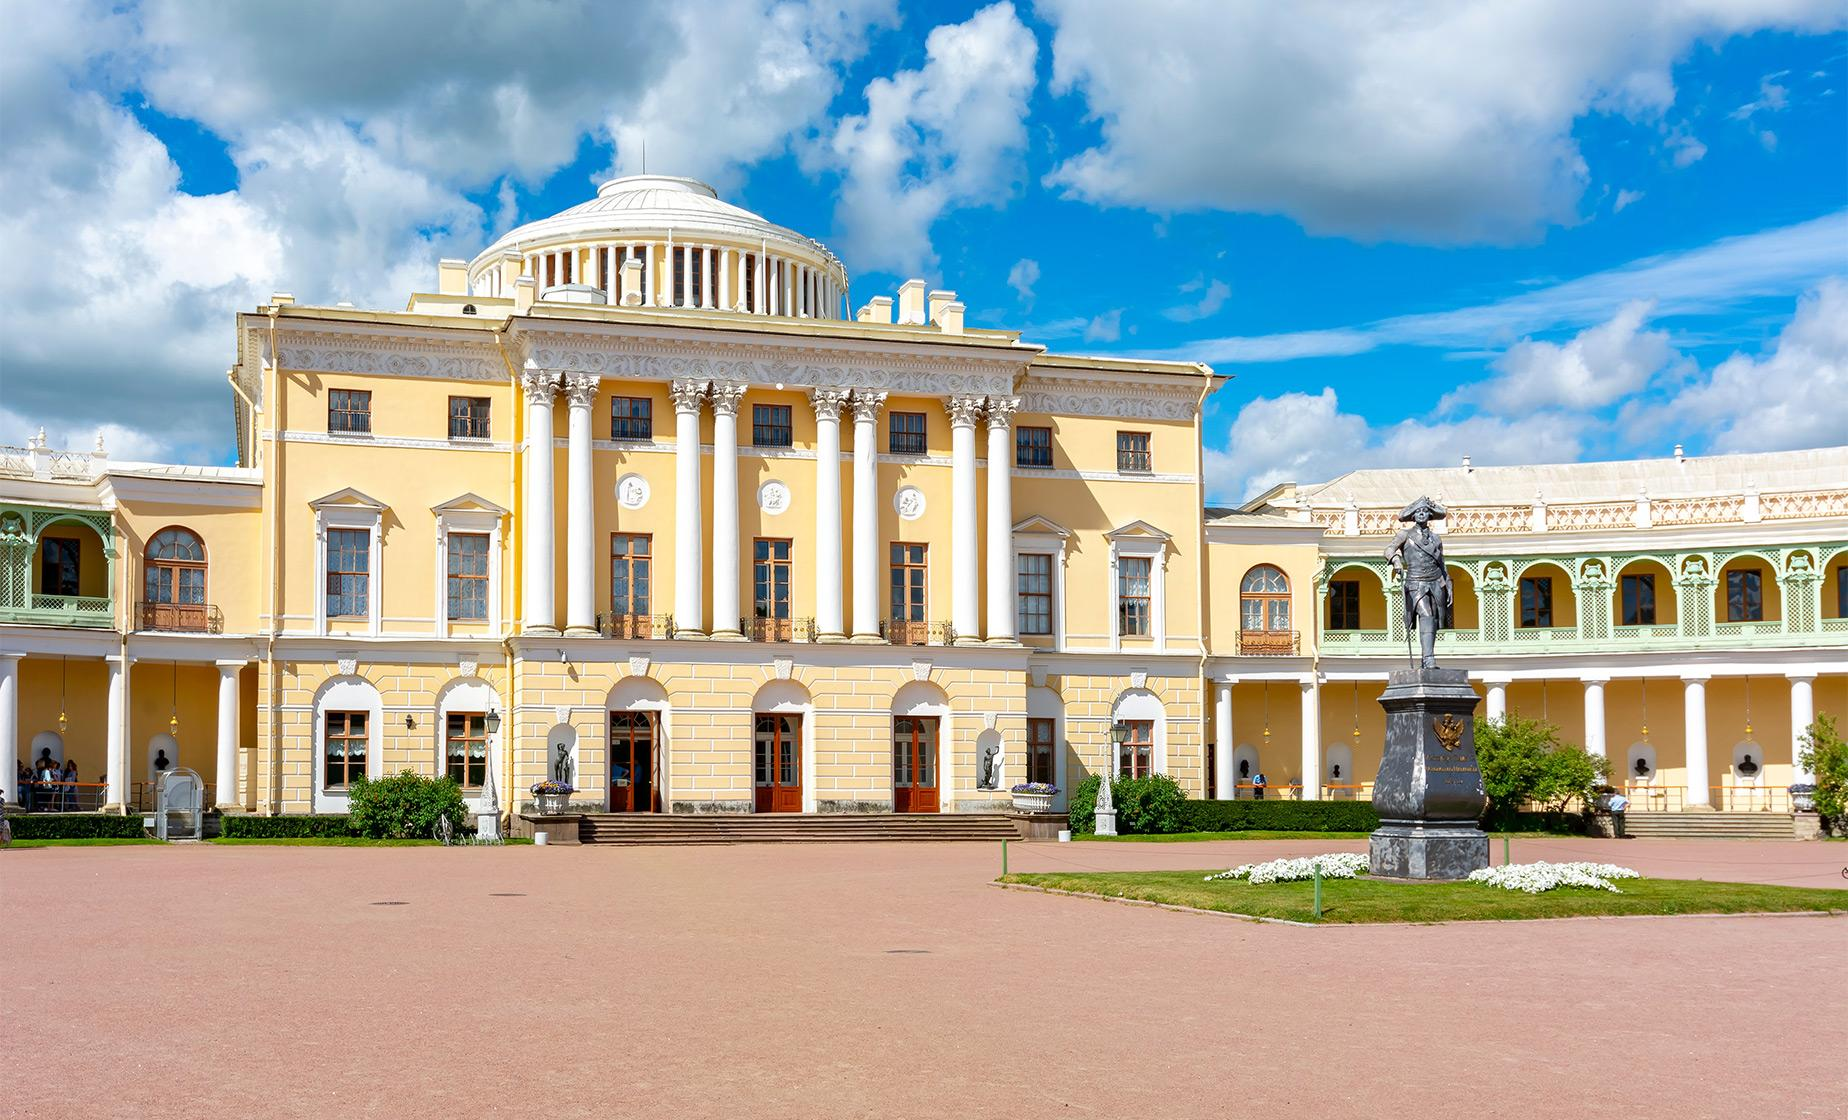 Catherine's Palace and Pavlovsk Residence (Visas Included)